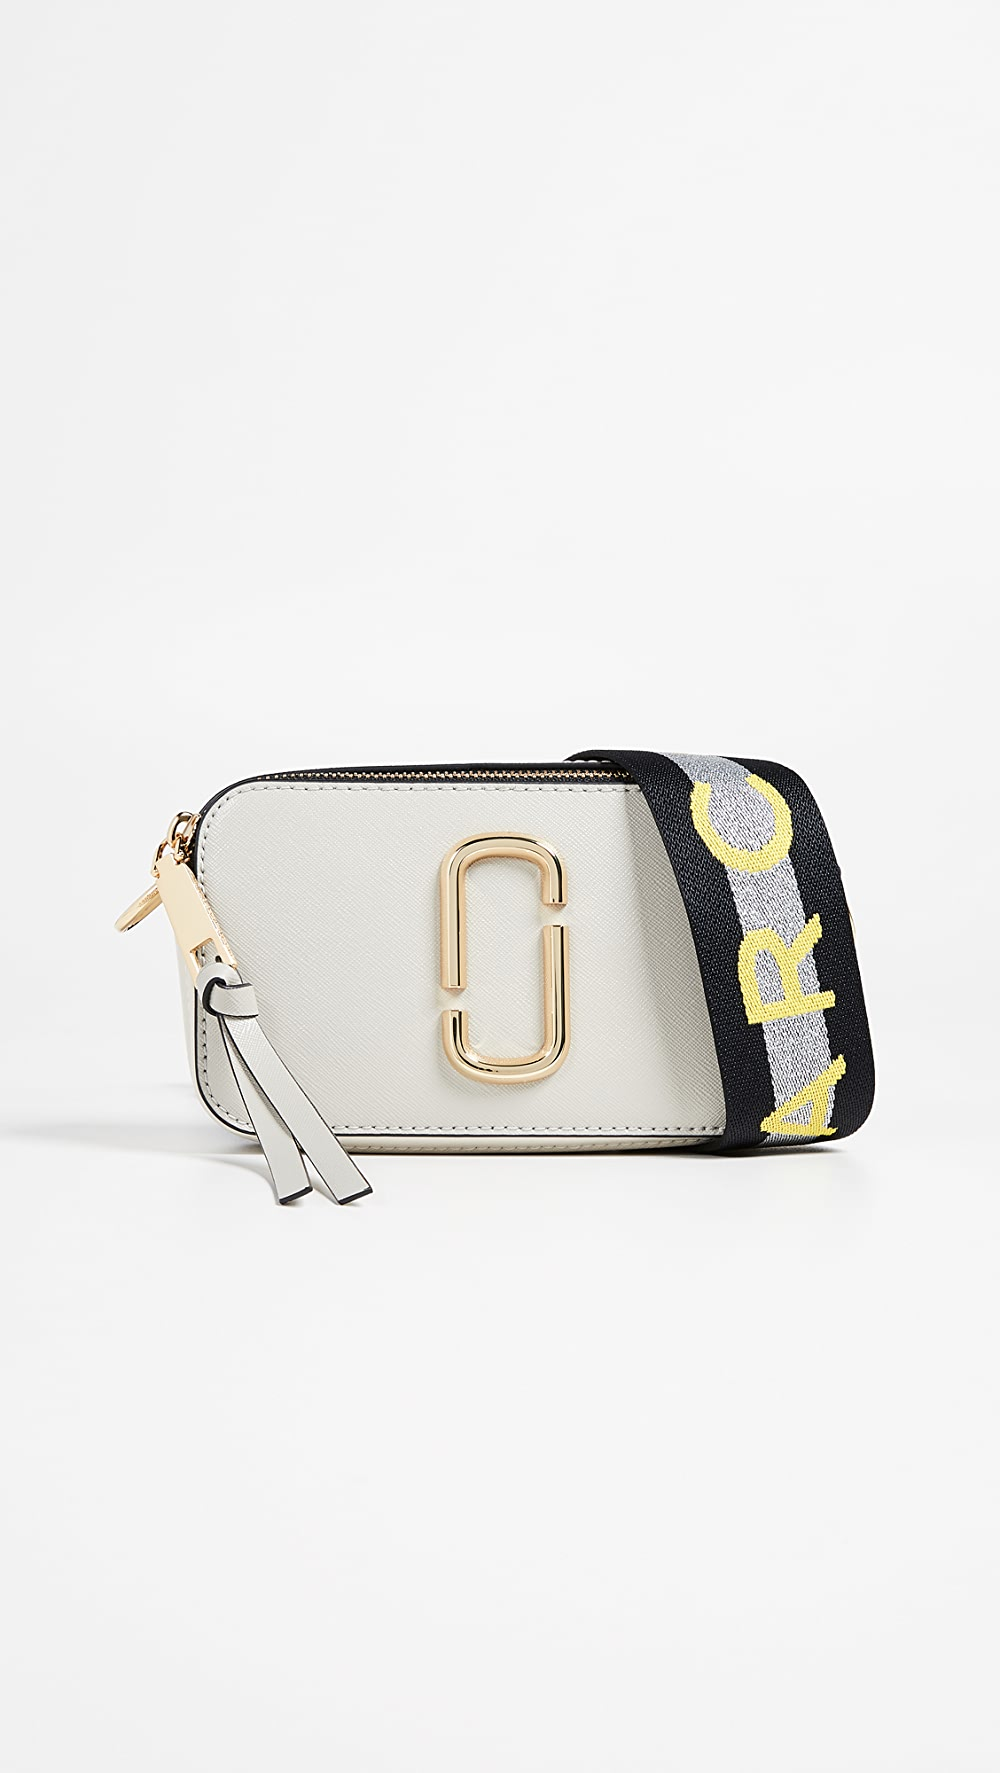 Able The Marc Jacobs - Snapshot Marc Jacobs Crossbody Bag High Quality Goods